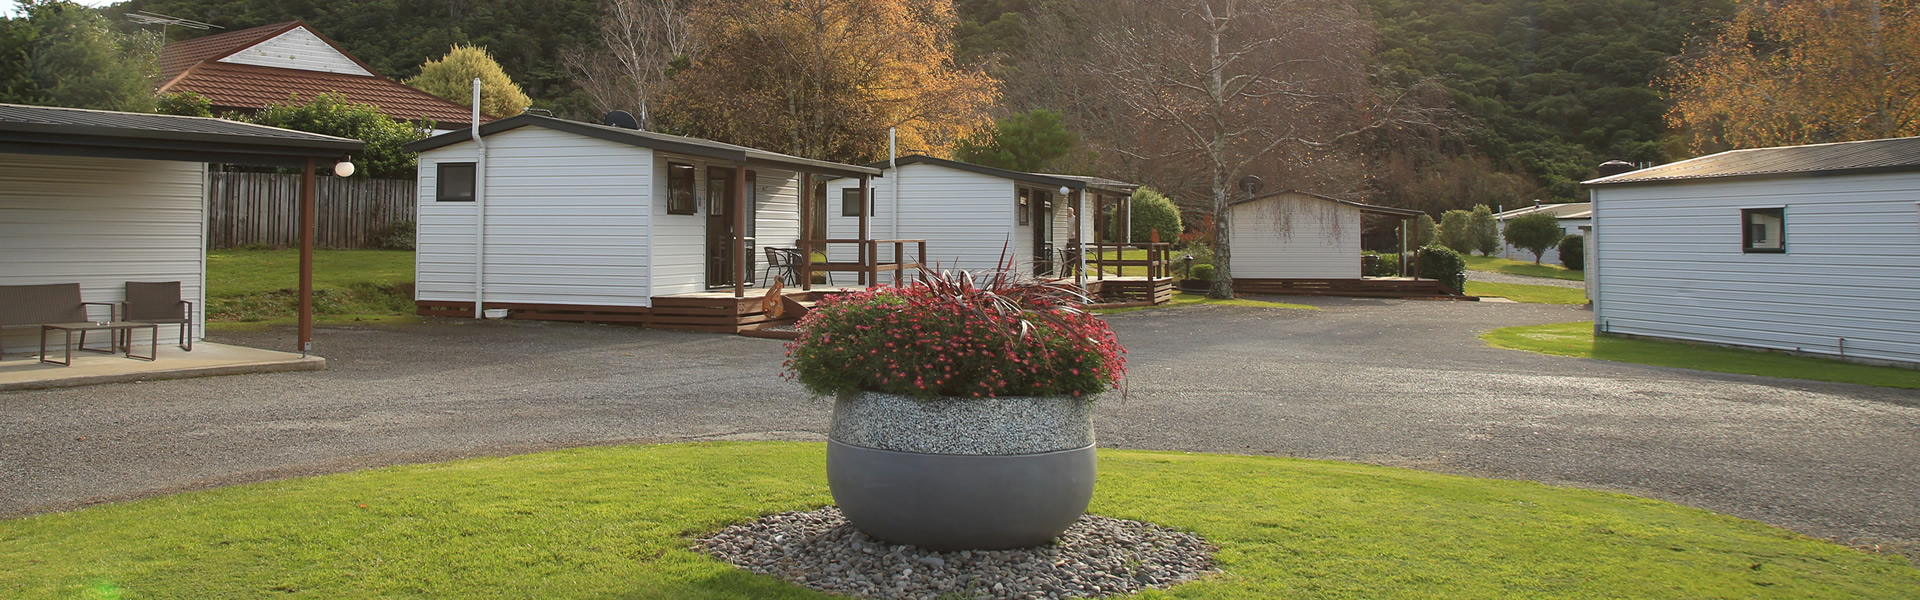 Cabin Accommodation At Parklands Marina Holiday Park In Picton NZ